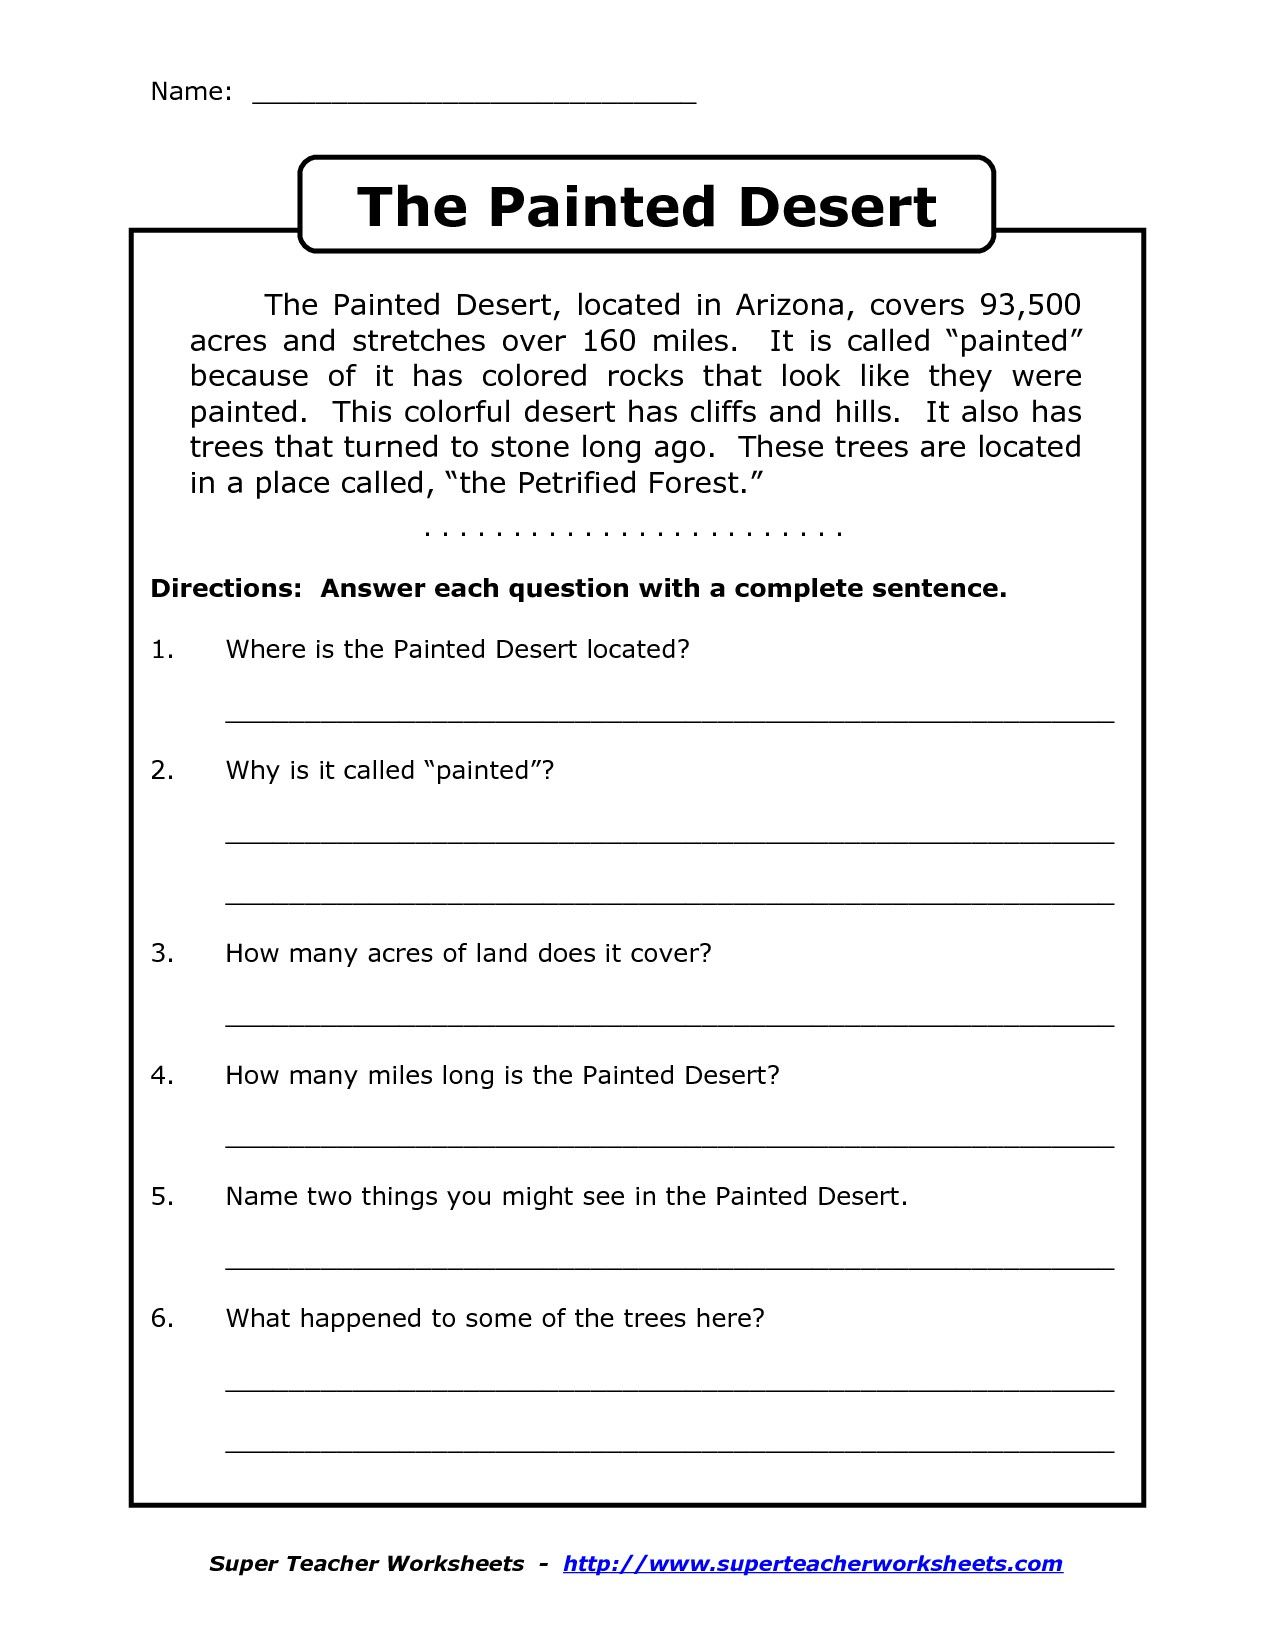 Worksheet Free Printable English Worksheets For Grade 3 worksheet printable worksheets for grade 3 english noconformity printables 1000